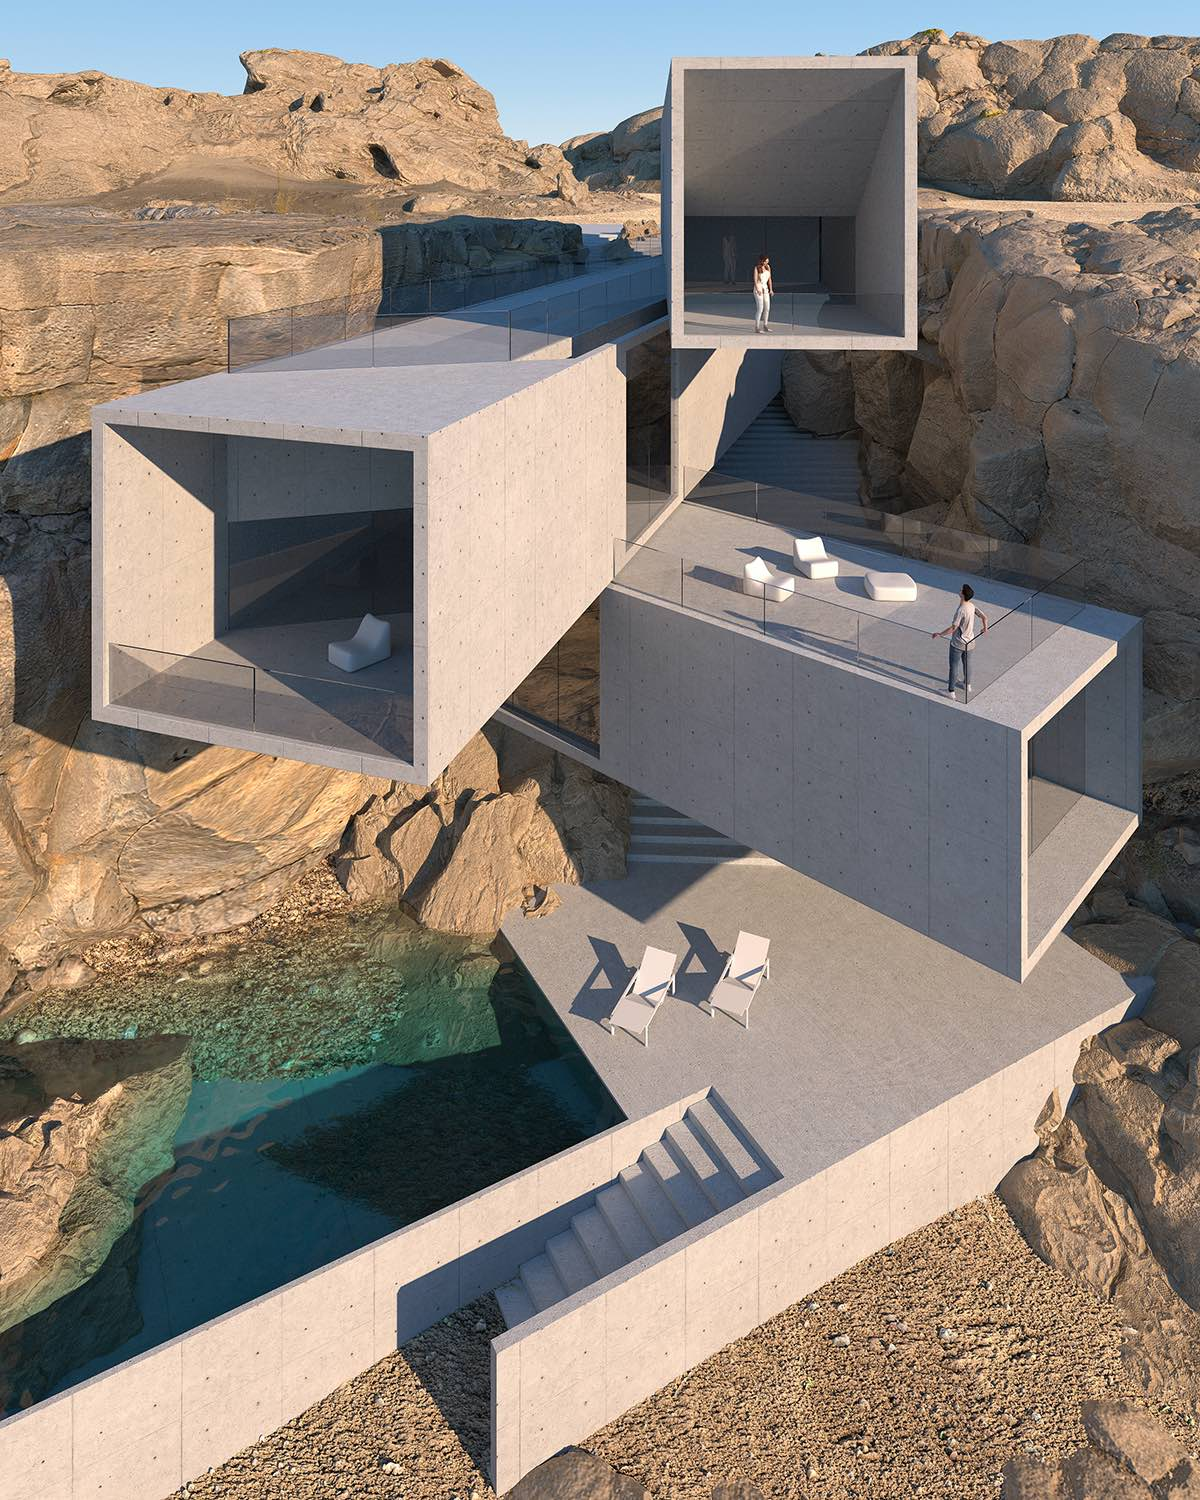 cliff house that shaped with rectangular concrete forms